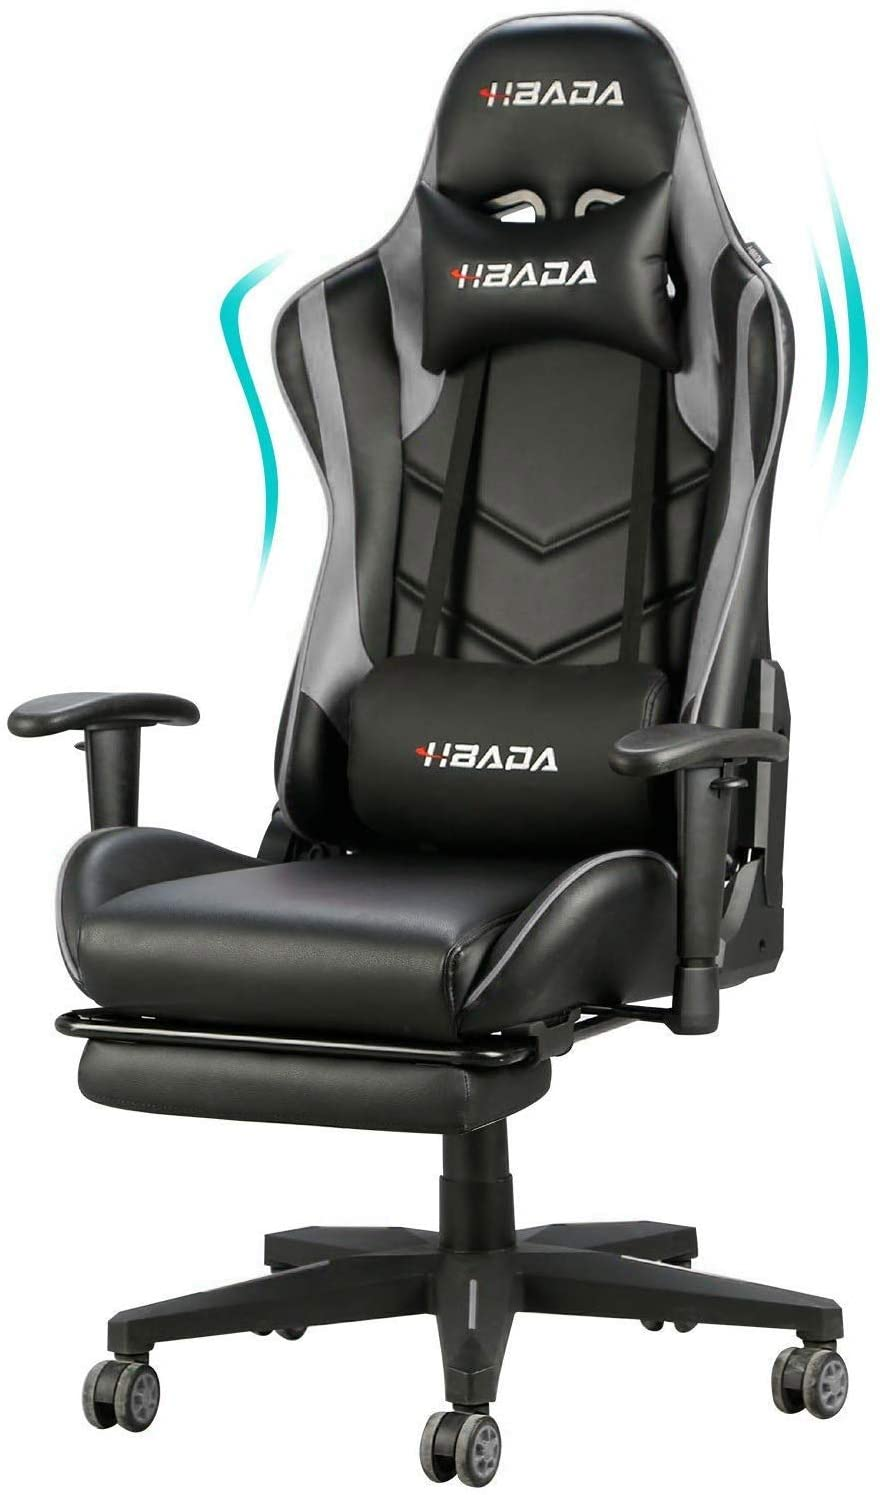 Hbada Gaming Chair, best gift for boyfriend